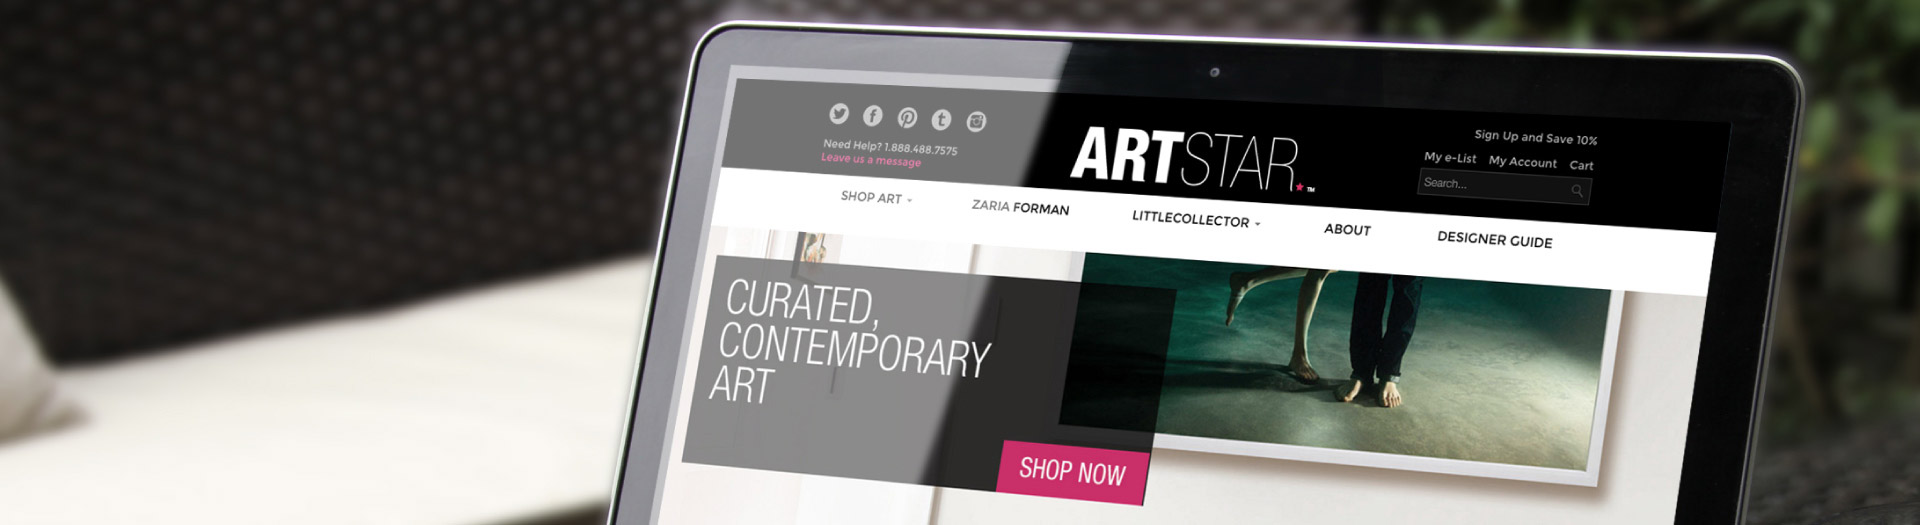 artstar_website